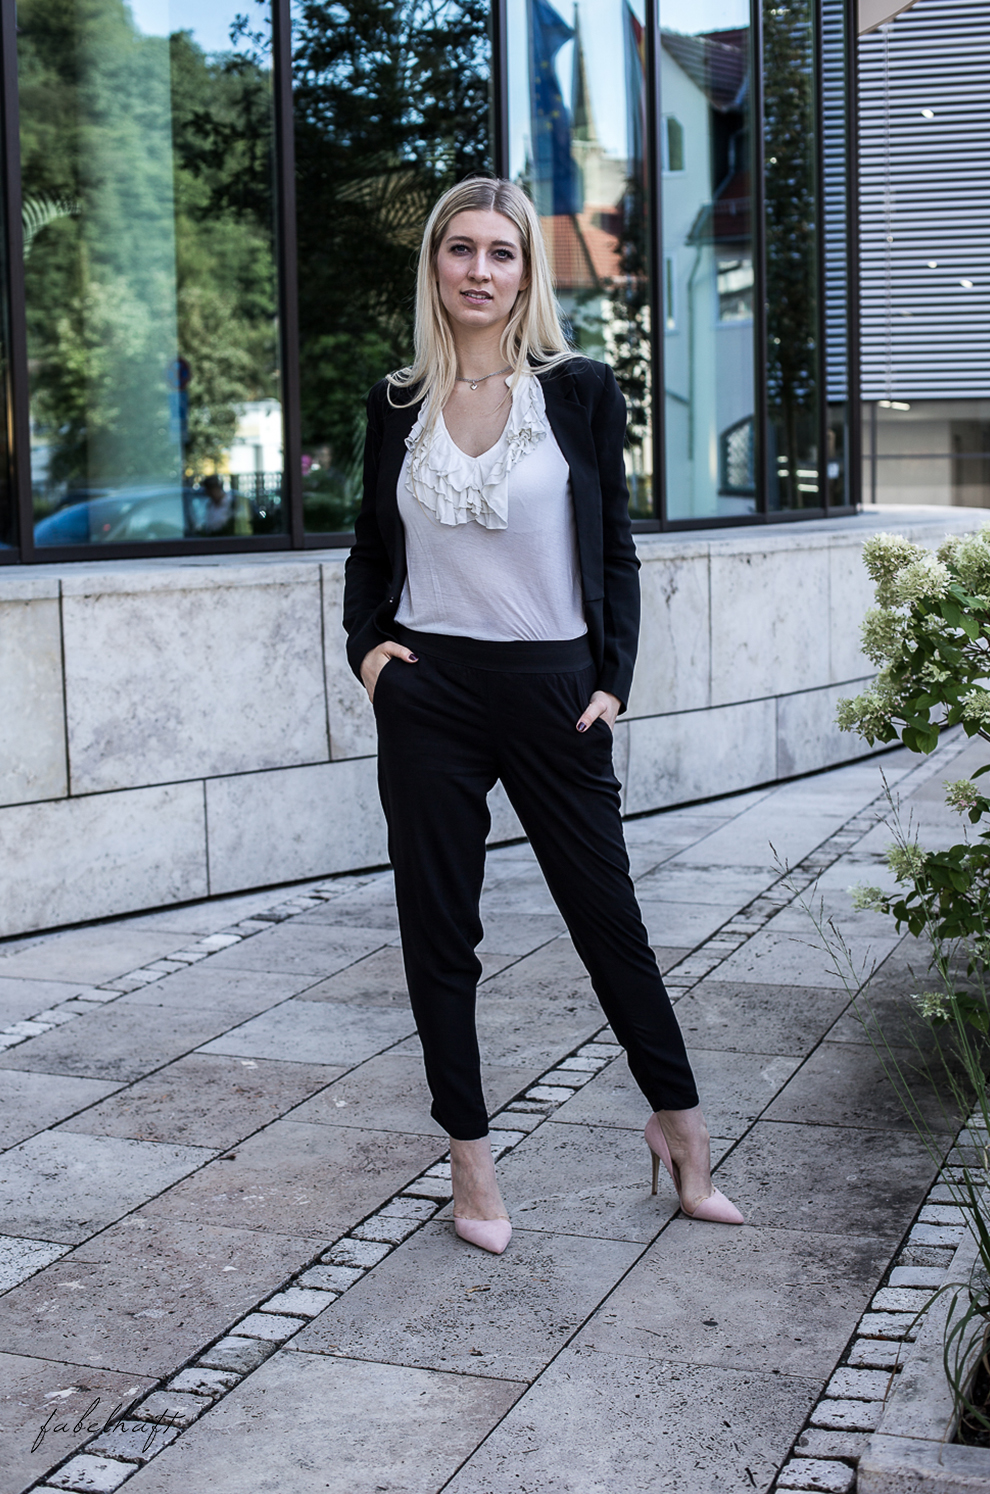 Business Outfit Girlboss Kostüm Fashion Style Liebeskind Fein & fabelhaft Fashion Trend Reken Maar 5